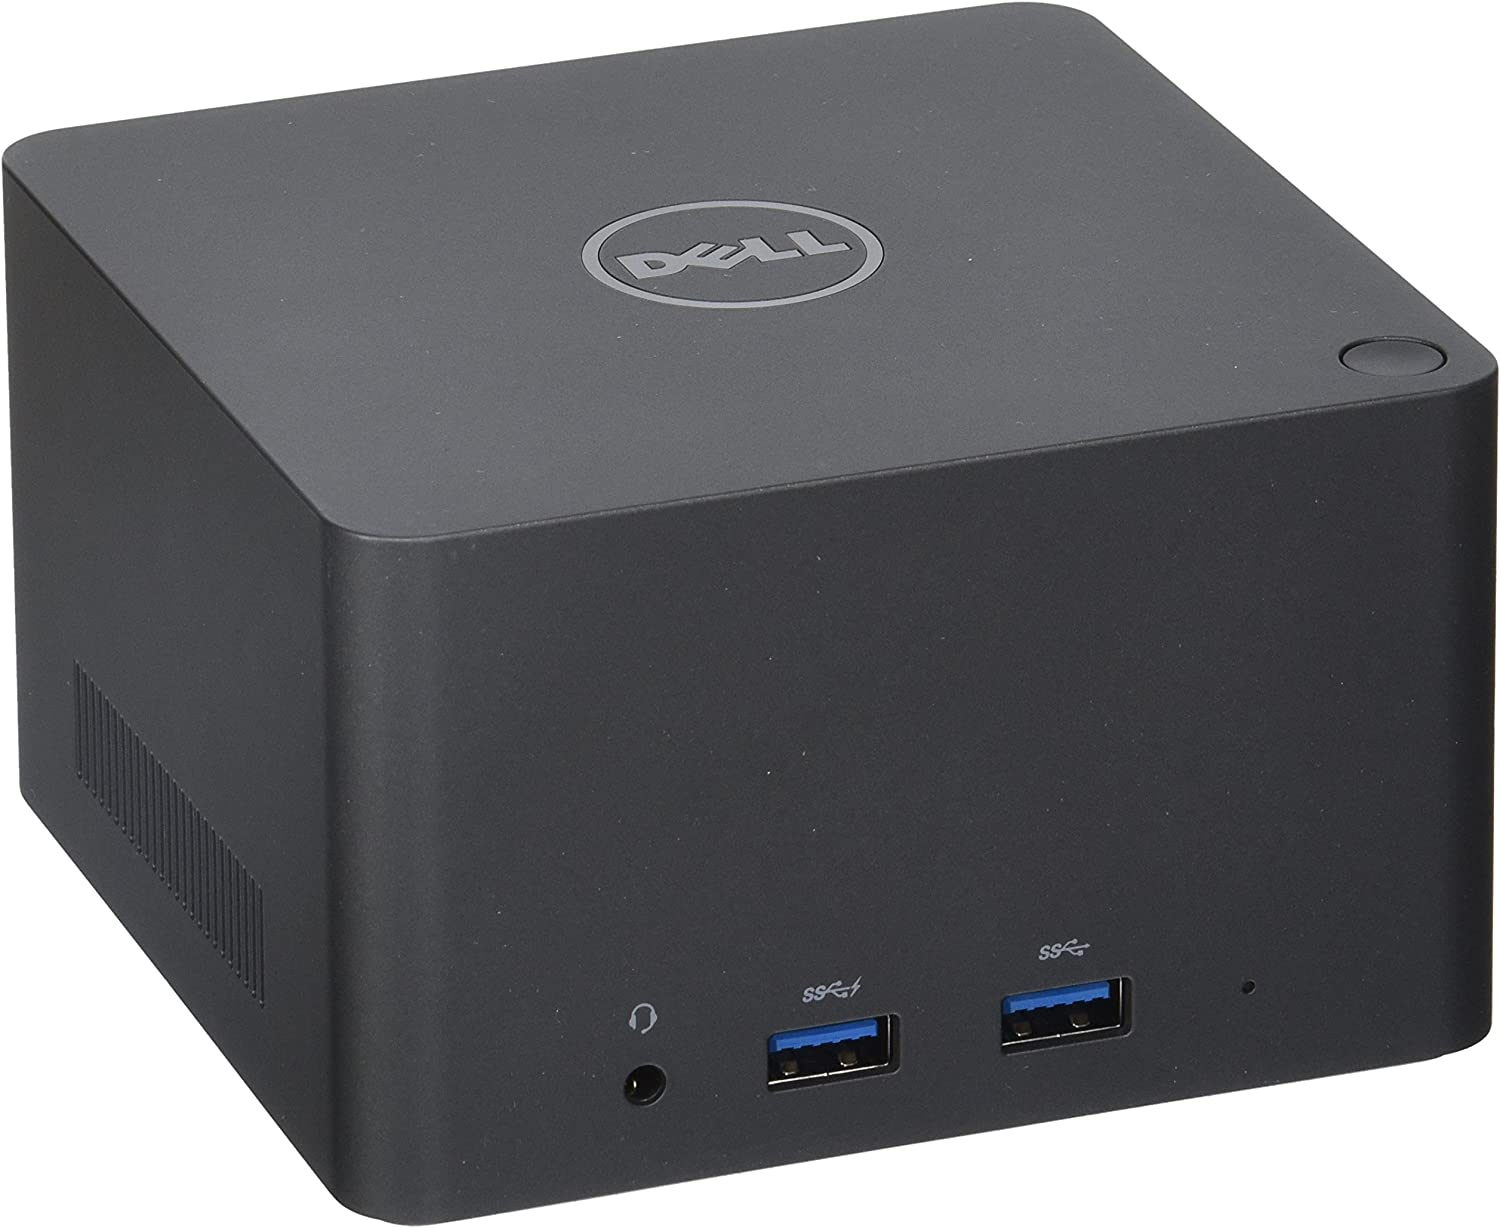 Dell Wireless WiGig Tri Band Dock Replicator for Select Latitude Models with WiGig Module/Antenna (WLD15 452-BBUX CTKM5)